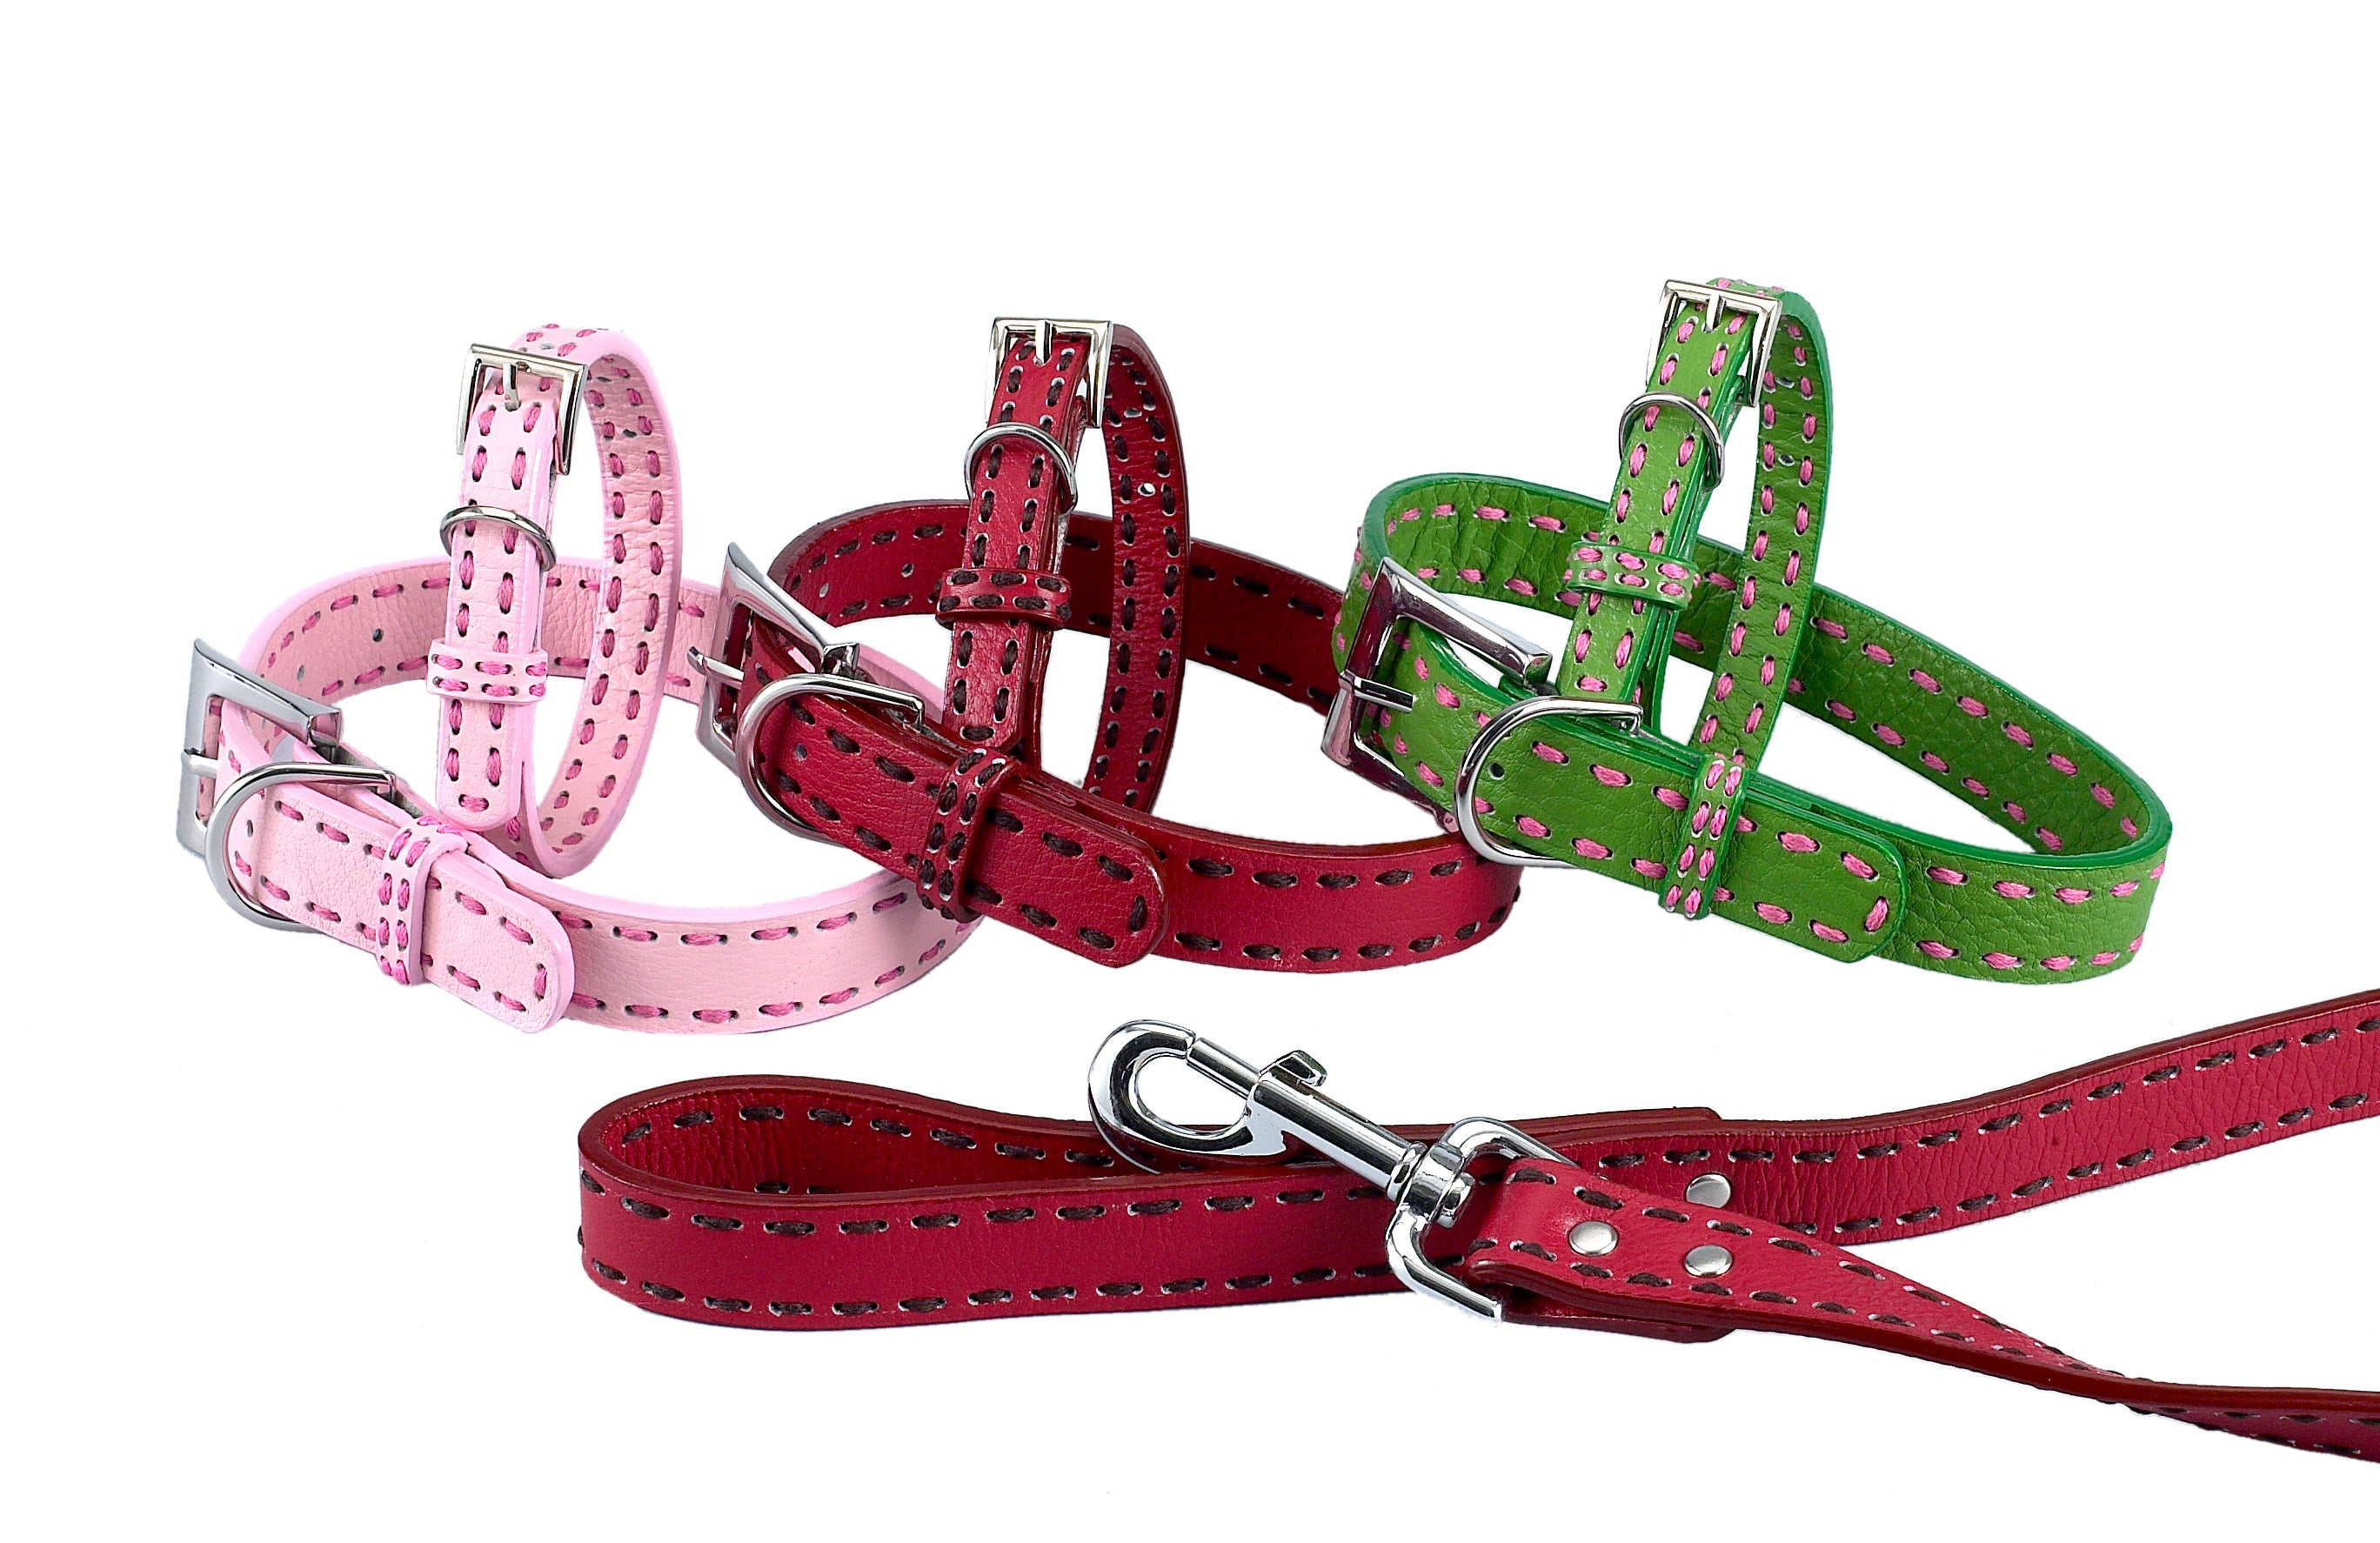 Leather Dog Collars - A Pet's World